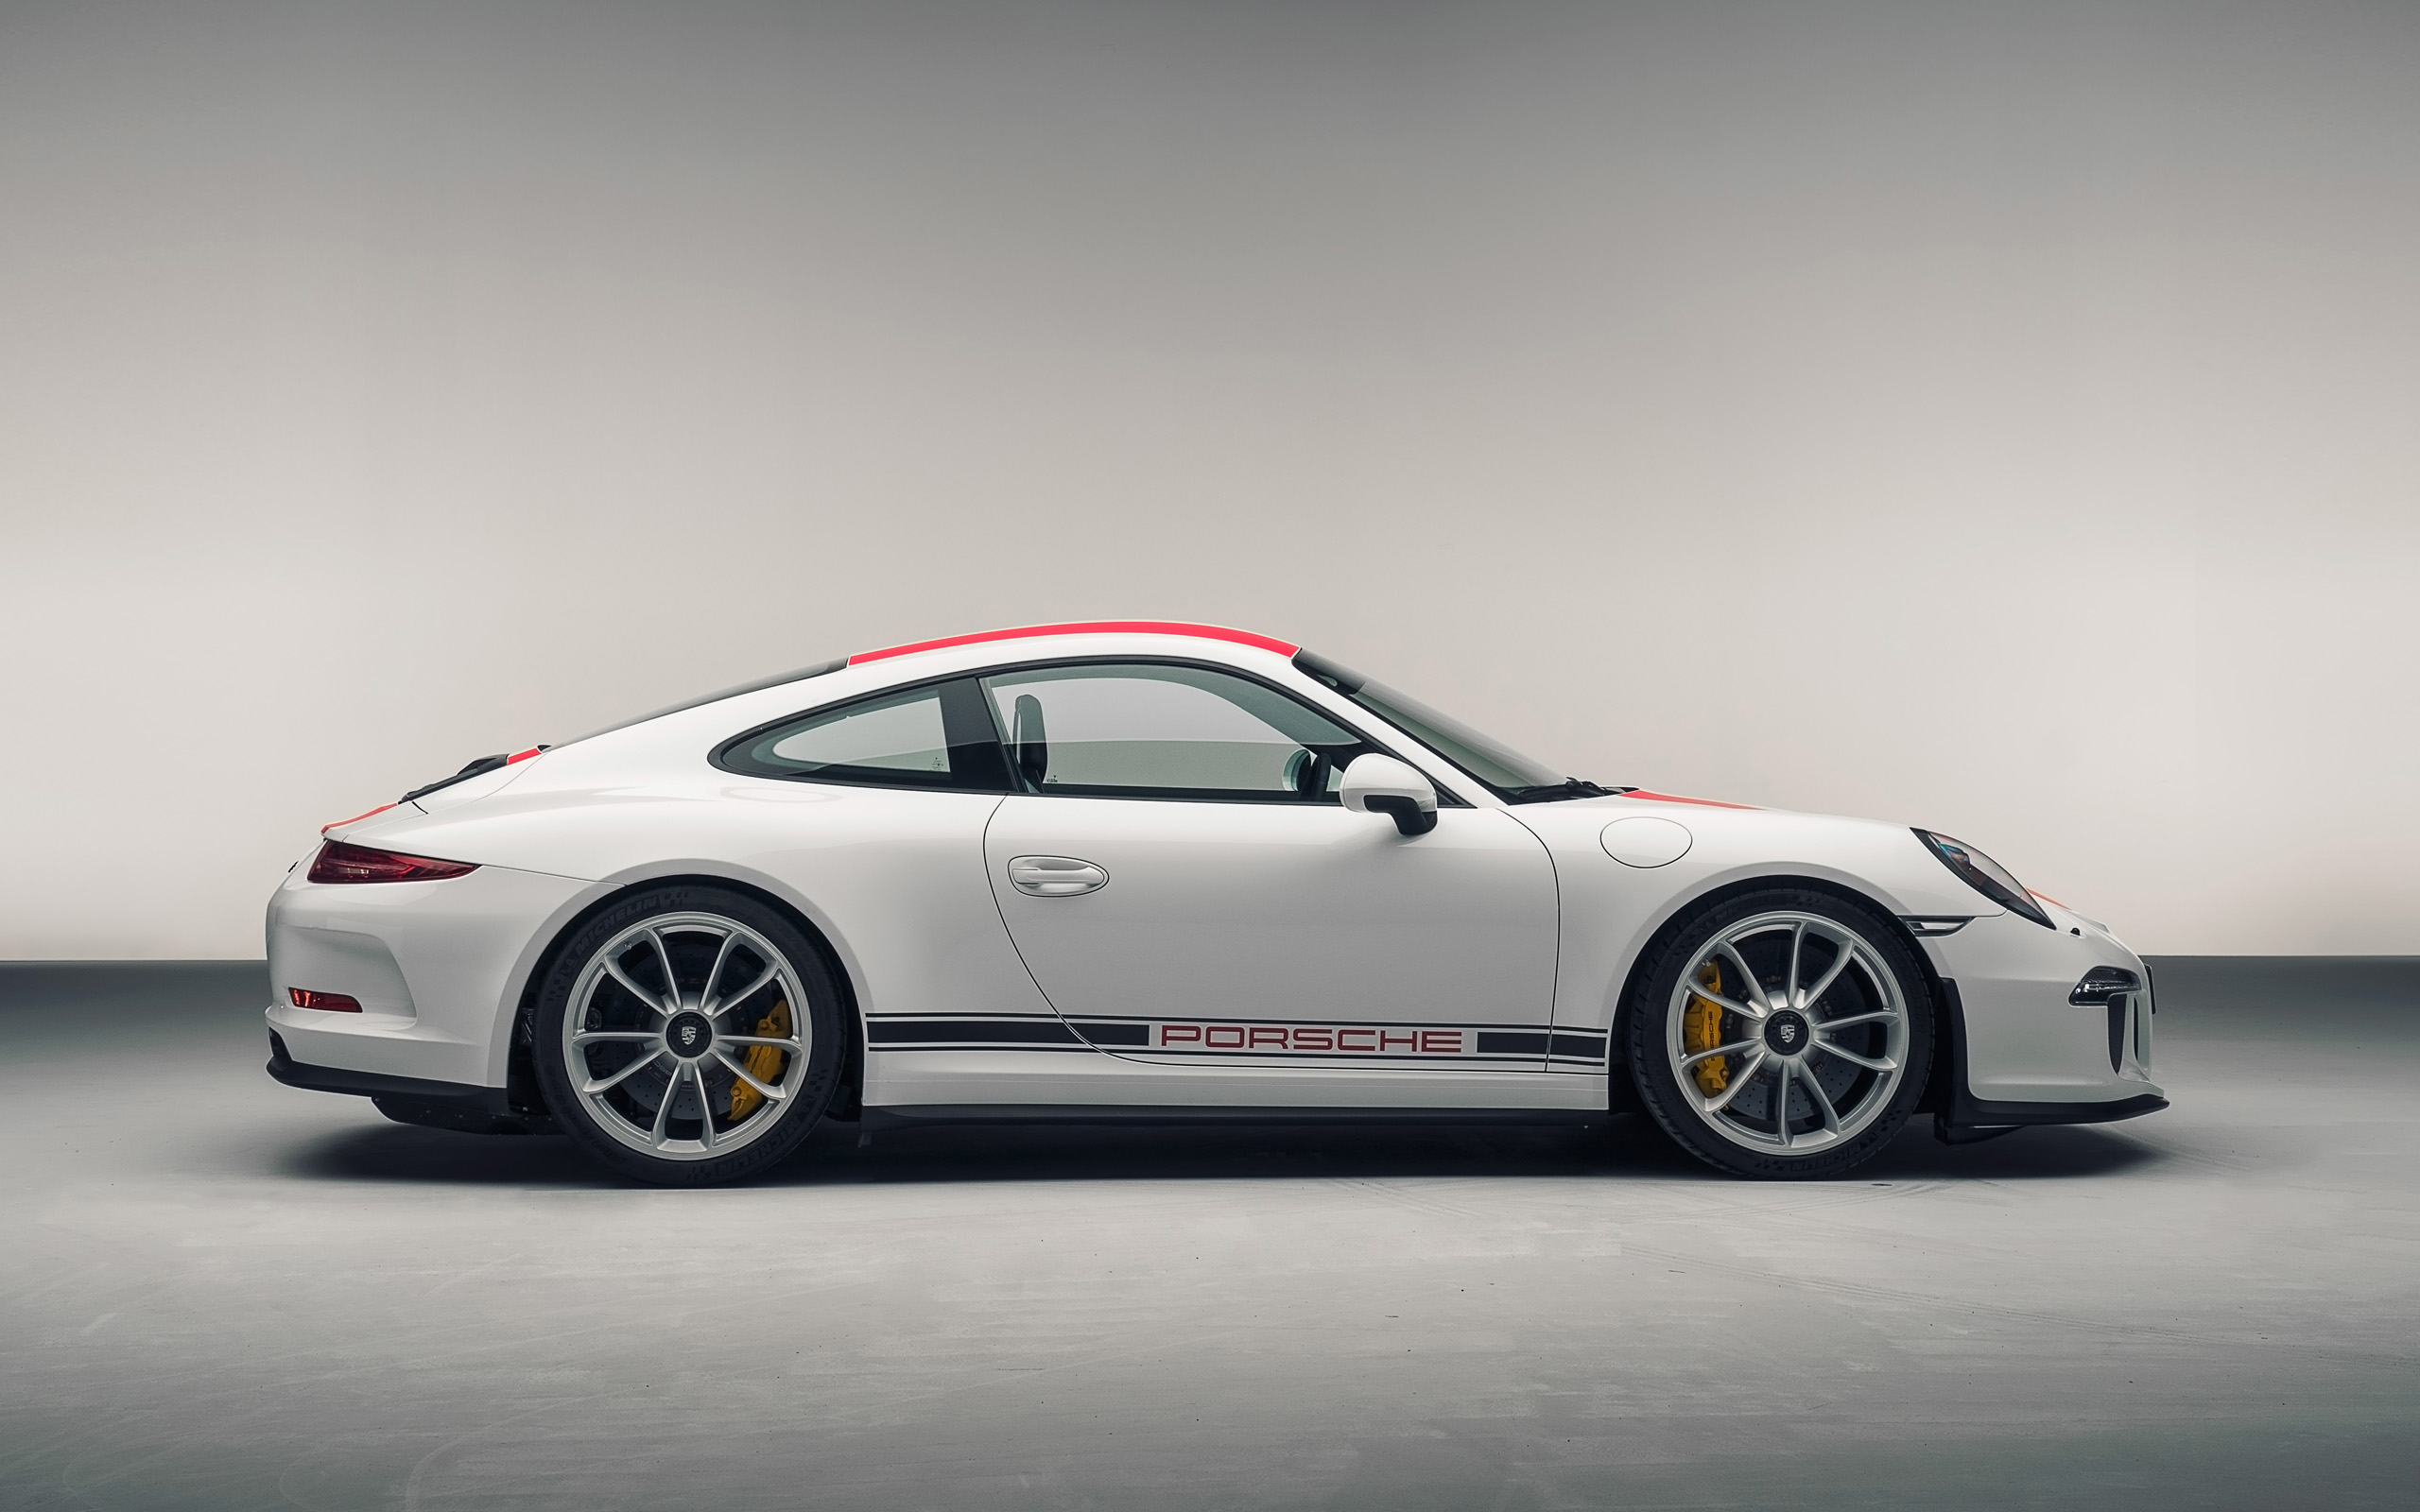 2016 Porsche 911 R   Studio   3   2560x1600   Wallpaper 2560x1600